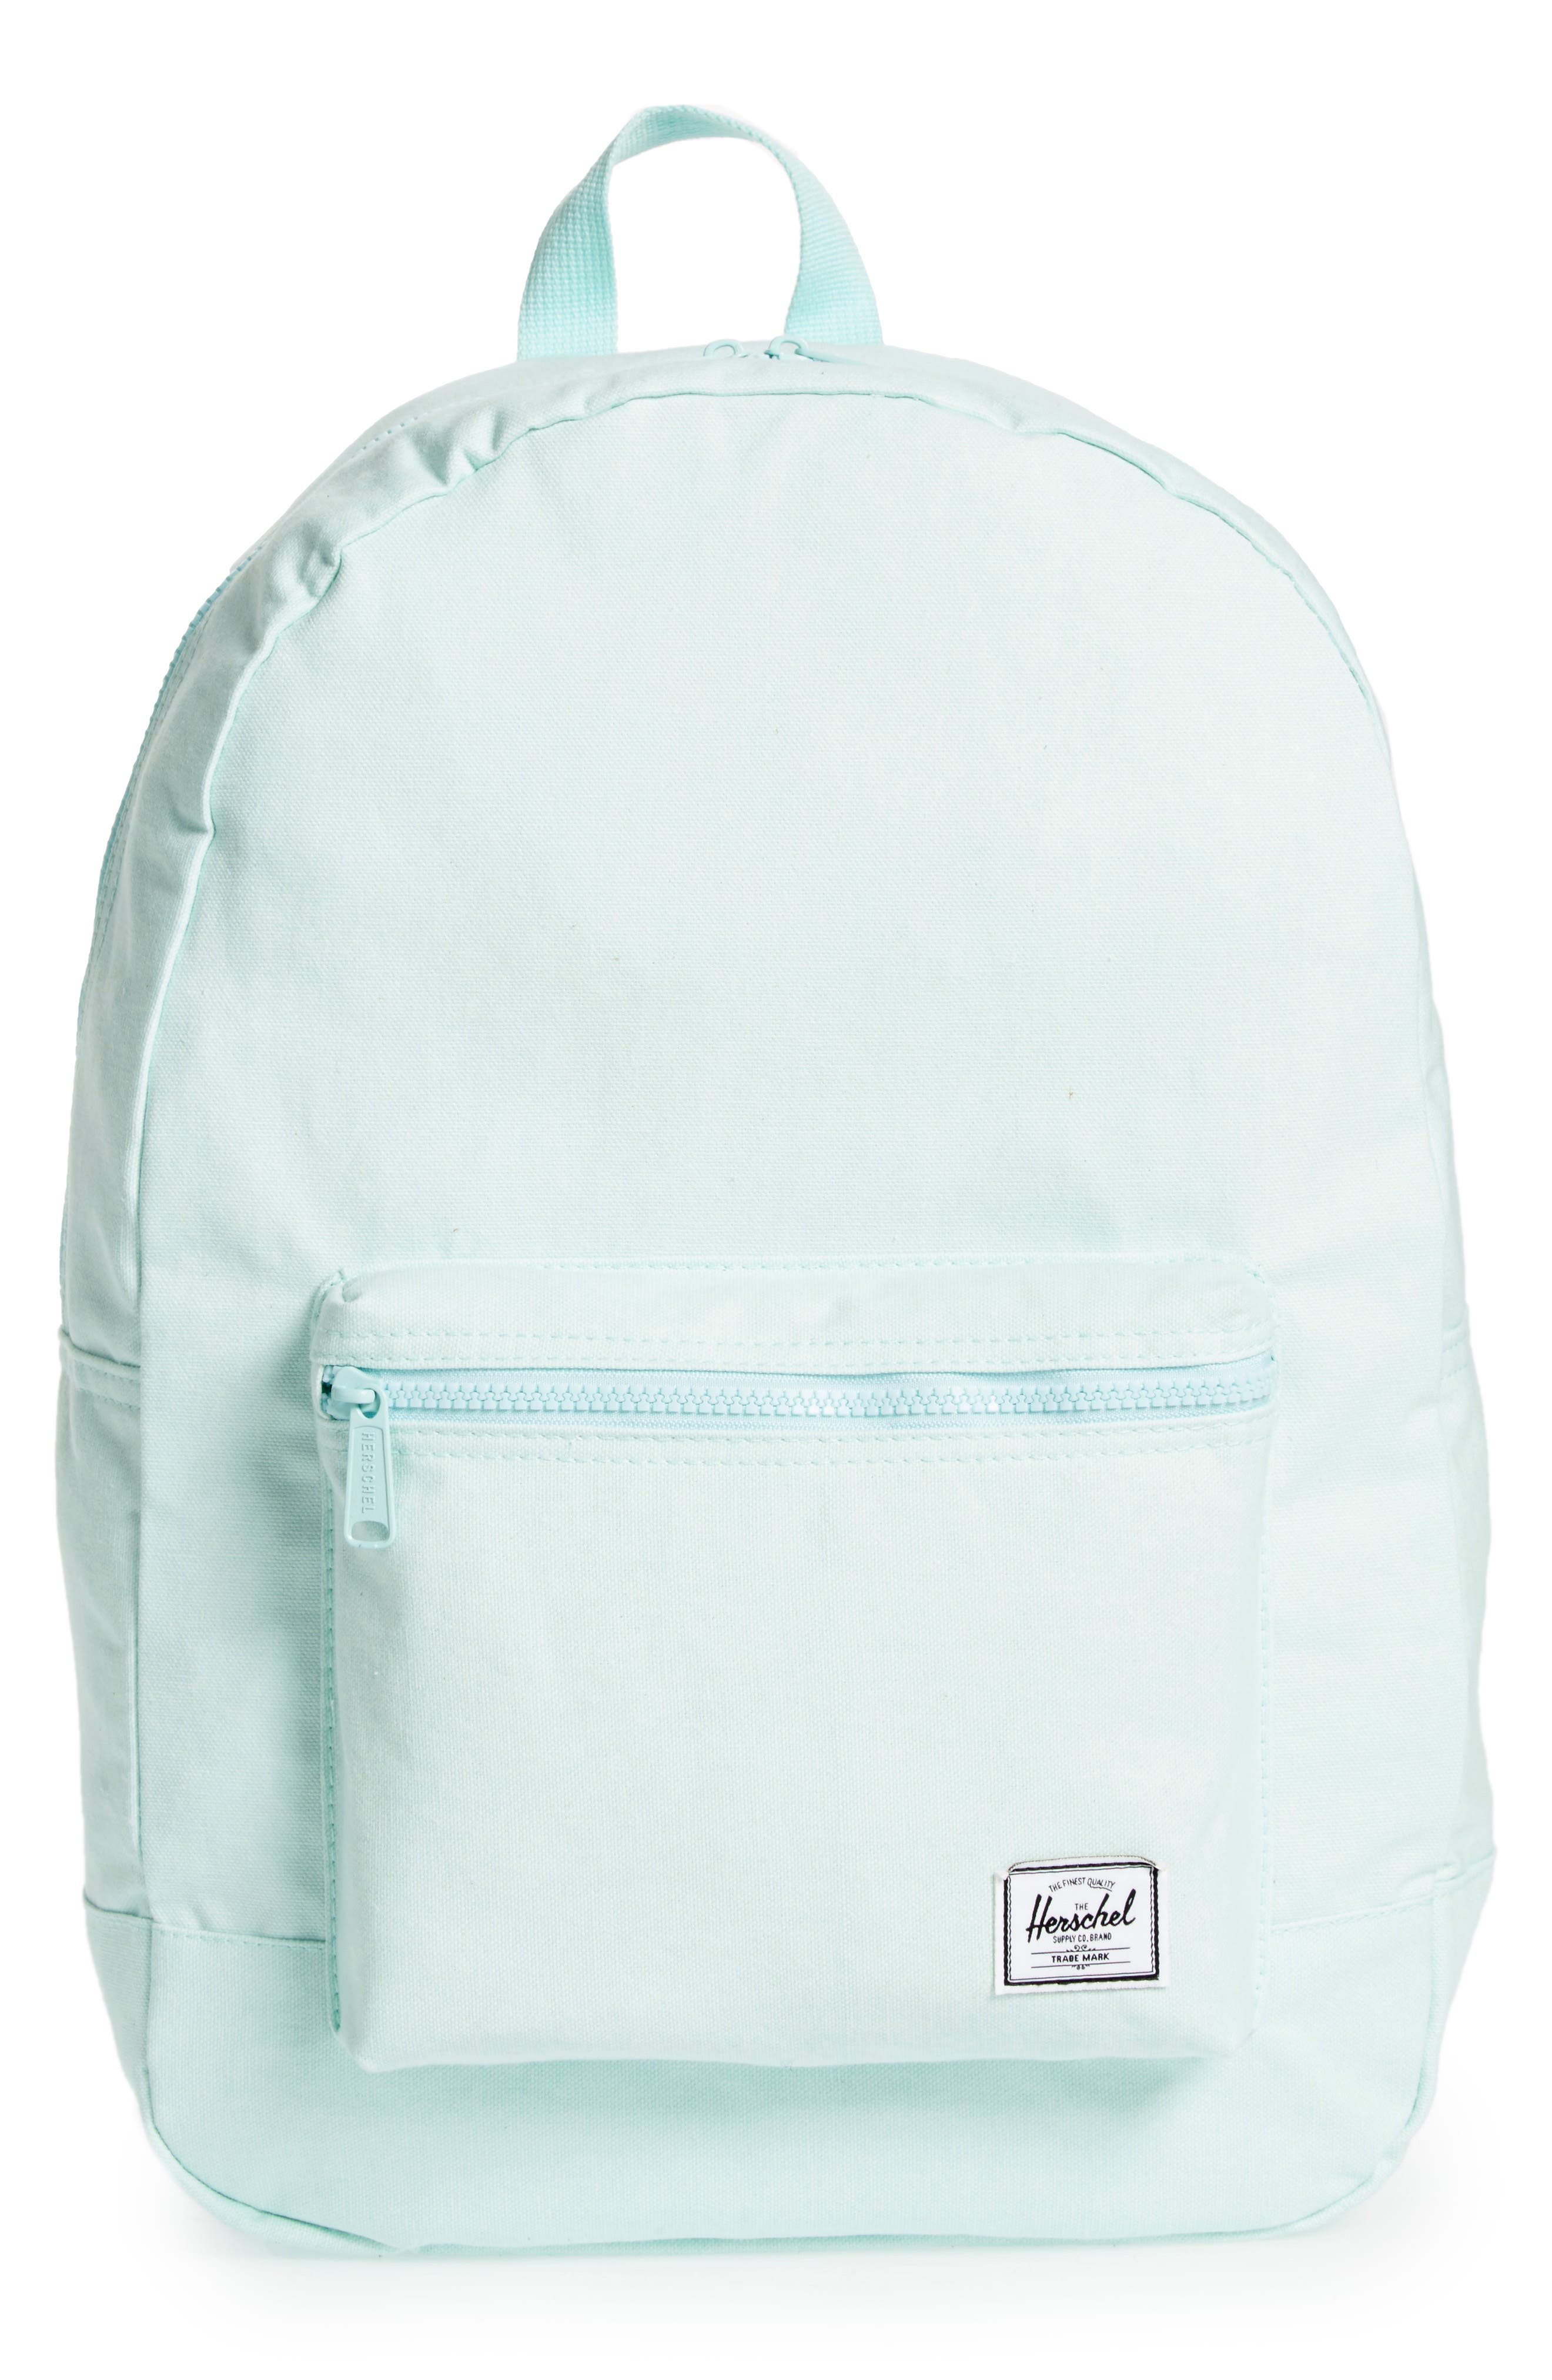 Cotton Casuals Daypack Backpack,                             Main thumbnail 7, color,